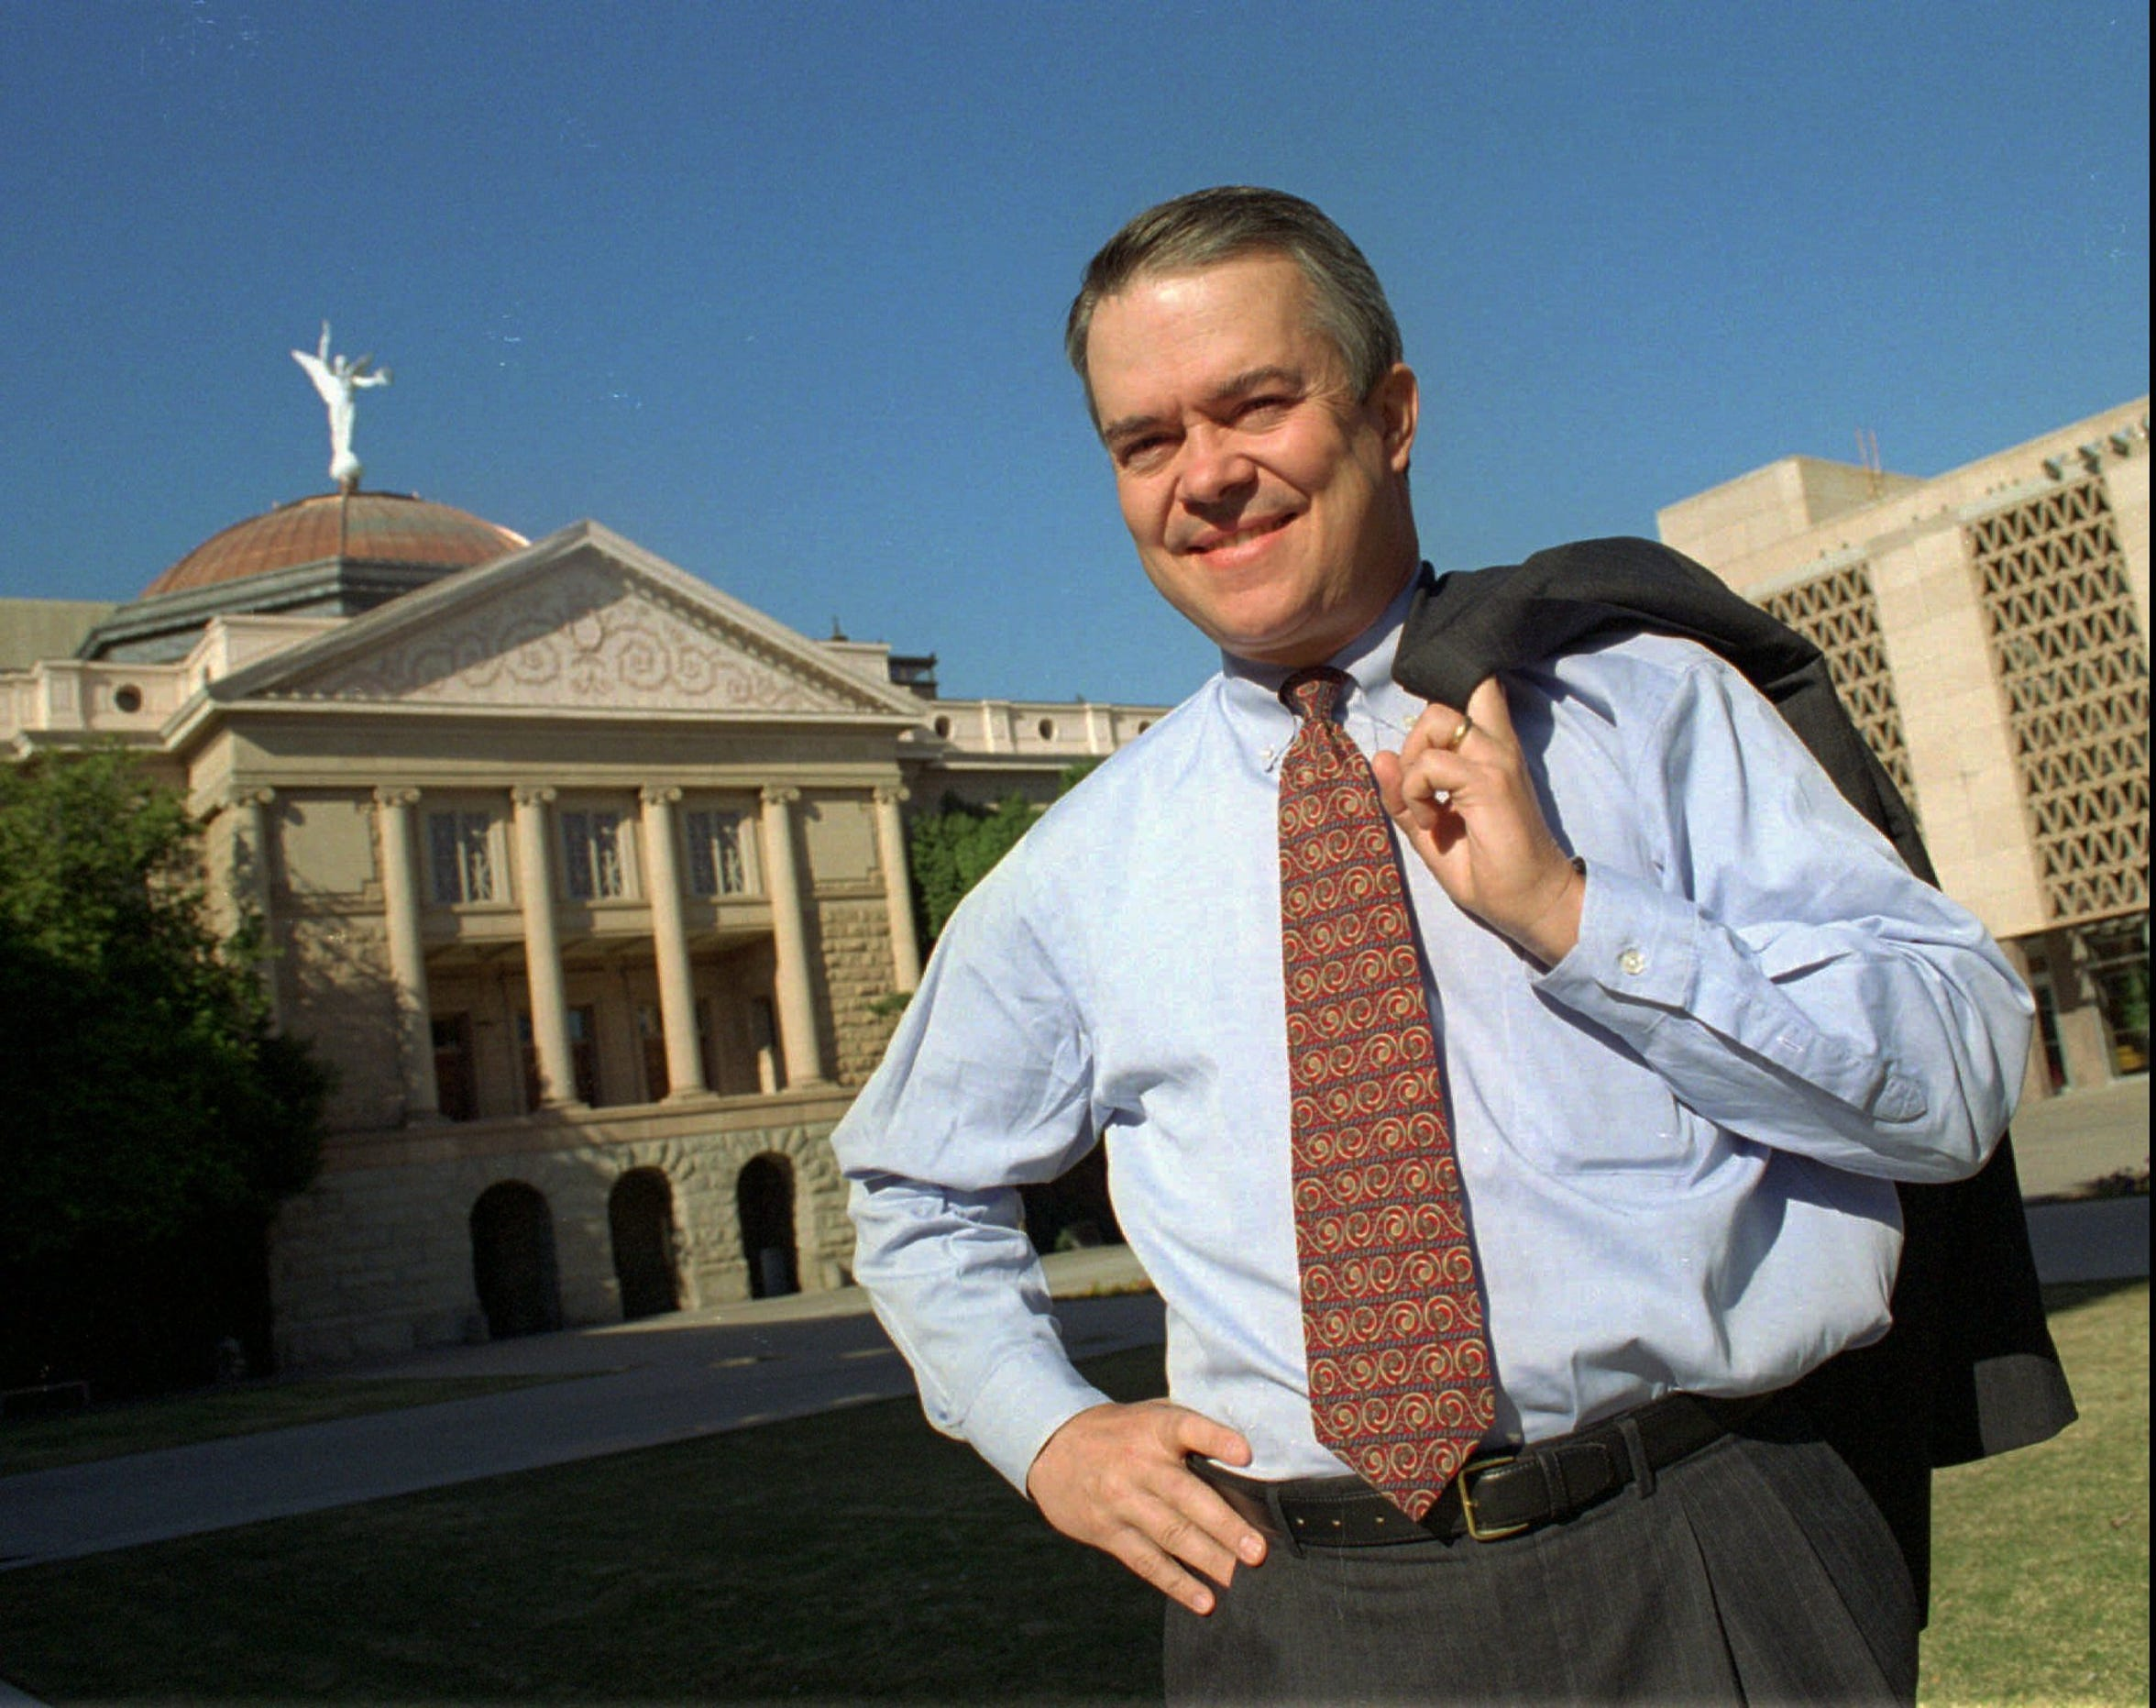 In 1995, State Sen. Tom Patterson poses in front of the Arizona Capitol in Phoenix